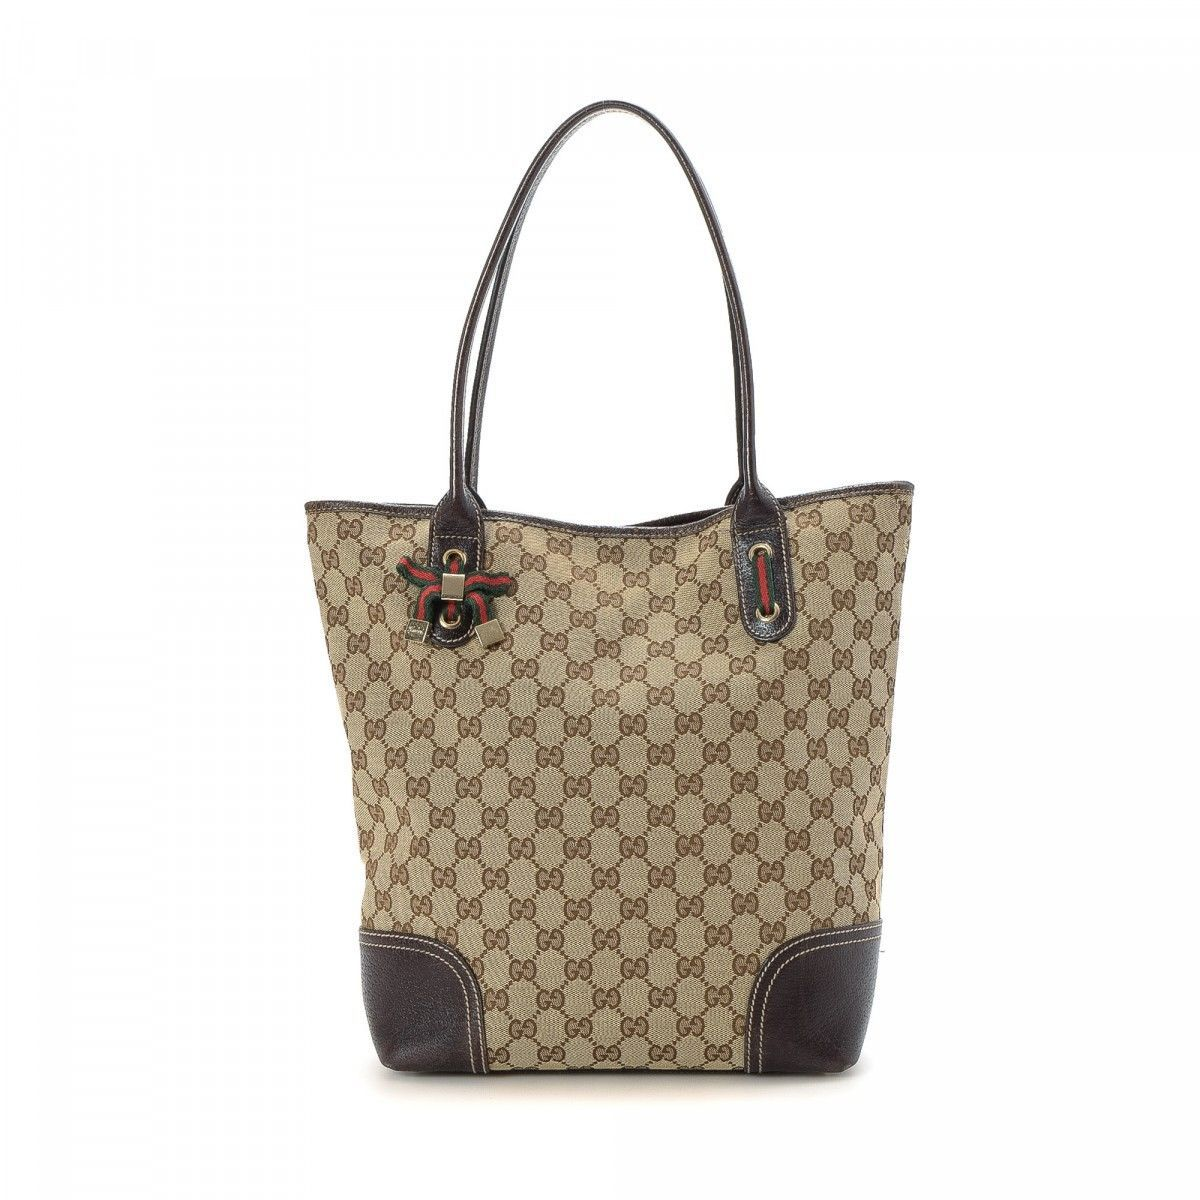 f728a6ae681 LXRandCo guarantees this is an authentic vintage Gucci Charmy tote. This  iconic large handbag was